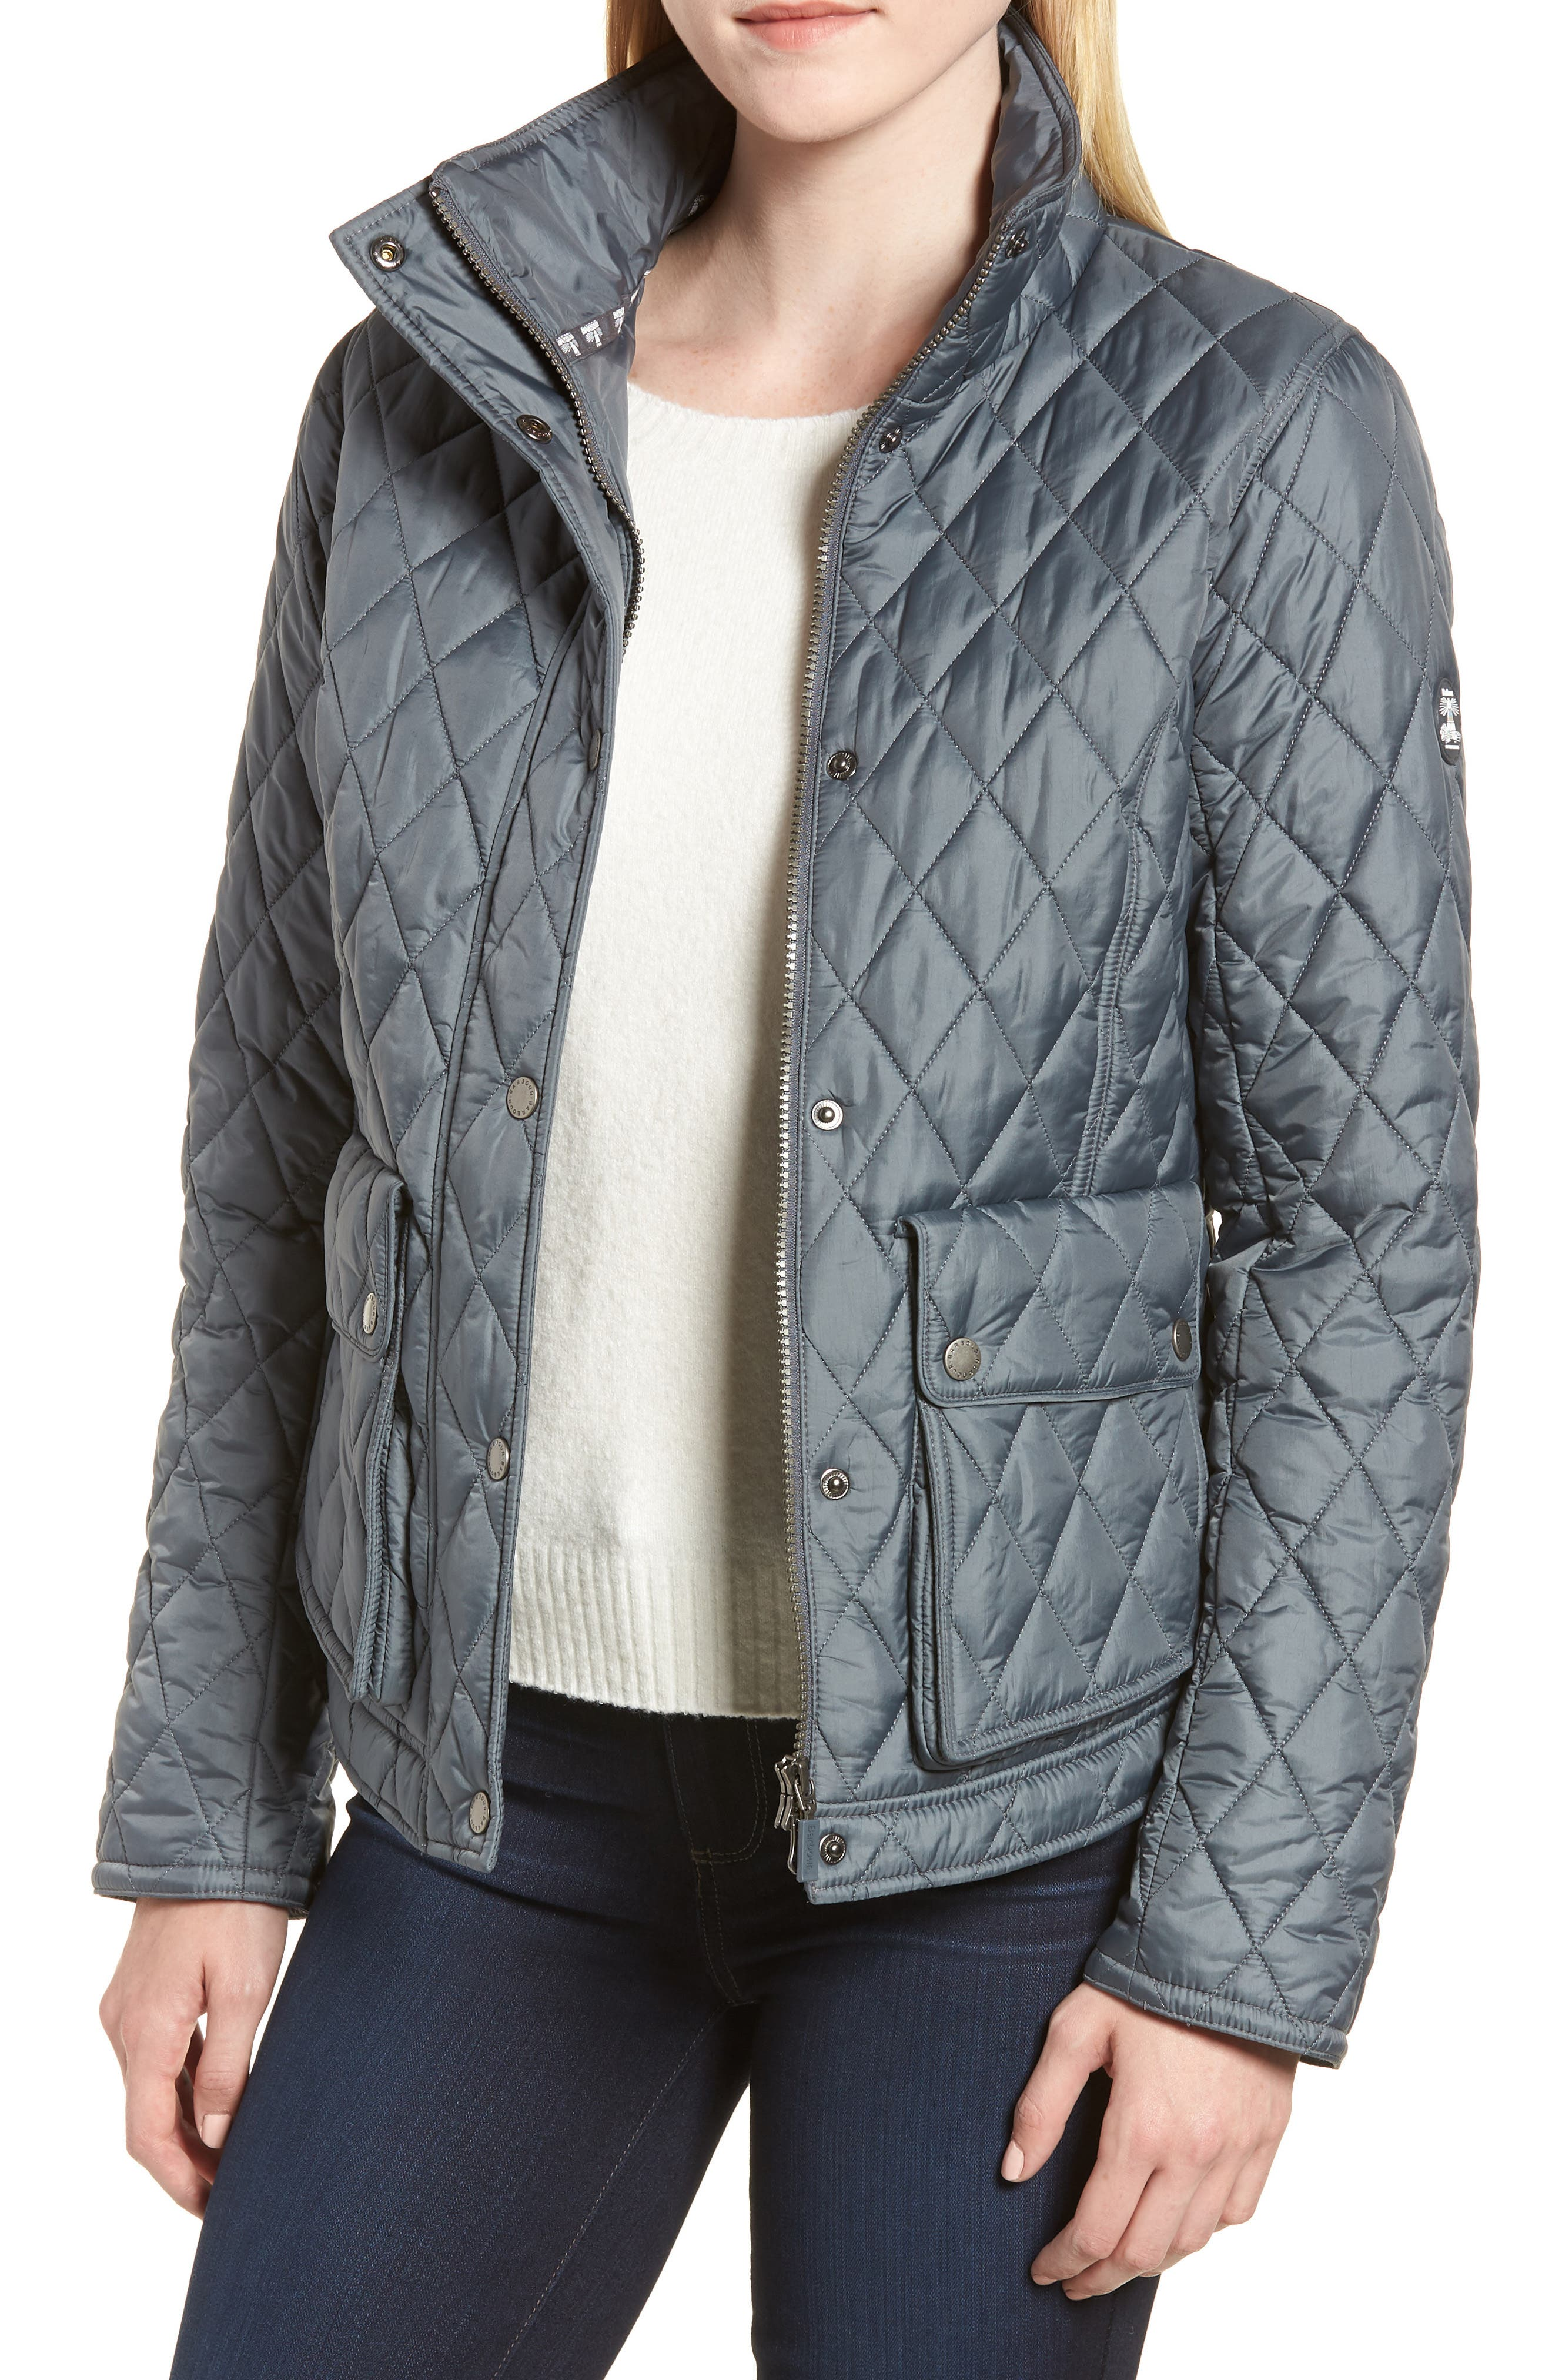 Fairway Quilted Jacket,                         Main,                         color, Washed Charcoal